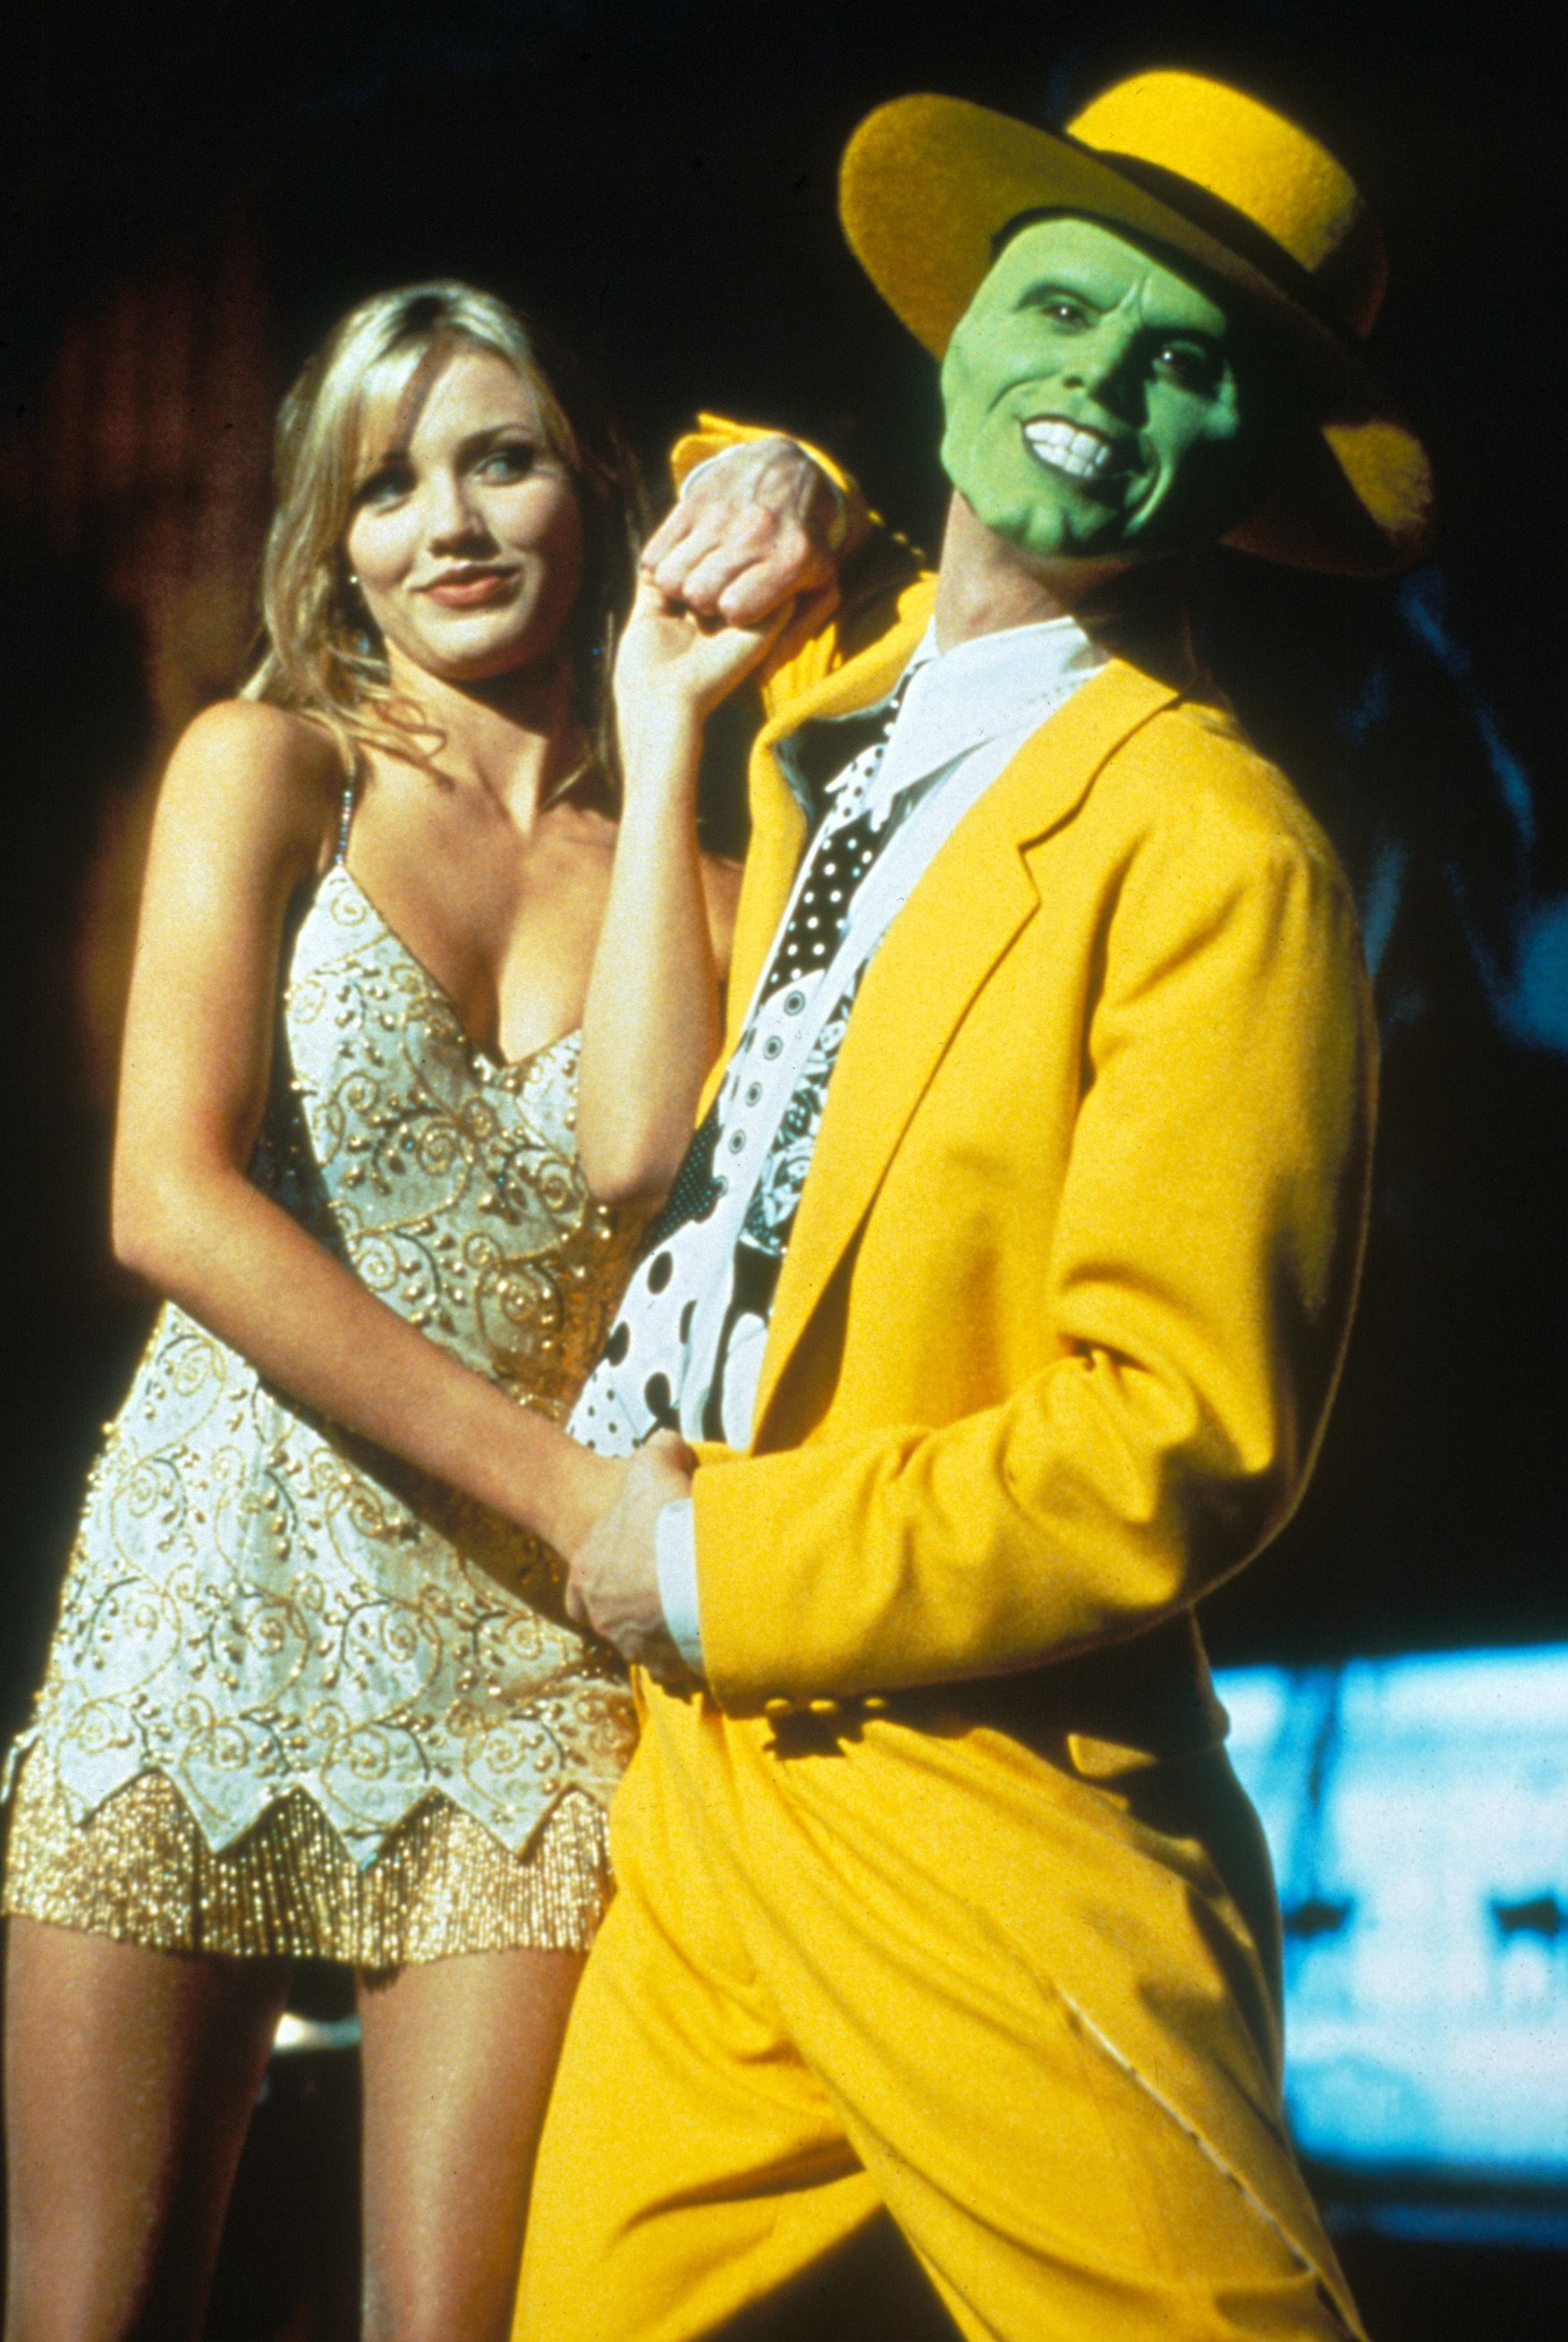 the mask movie still 1994 l to r cameron diaz jim carrey film pinterest jim. Black Bedroom Furniture Sets. Home Design Ideas